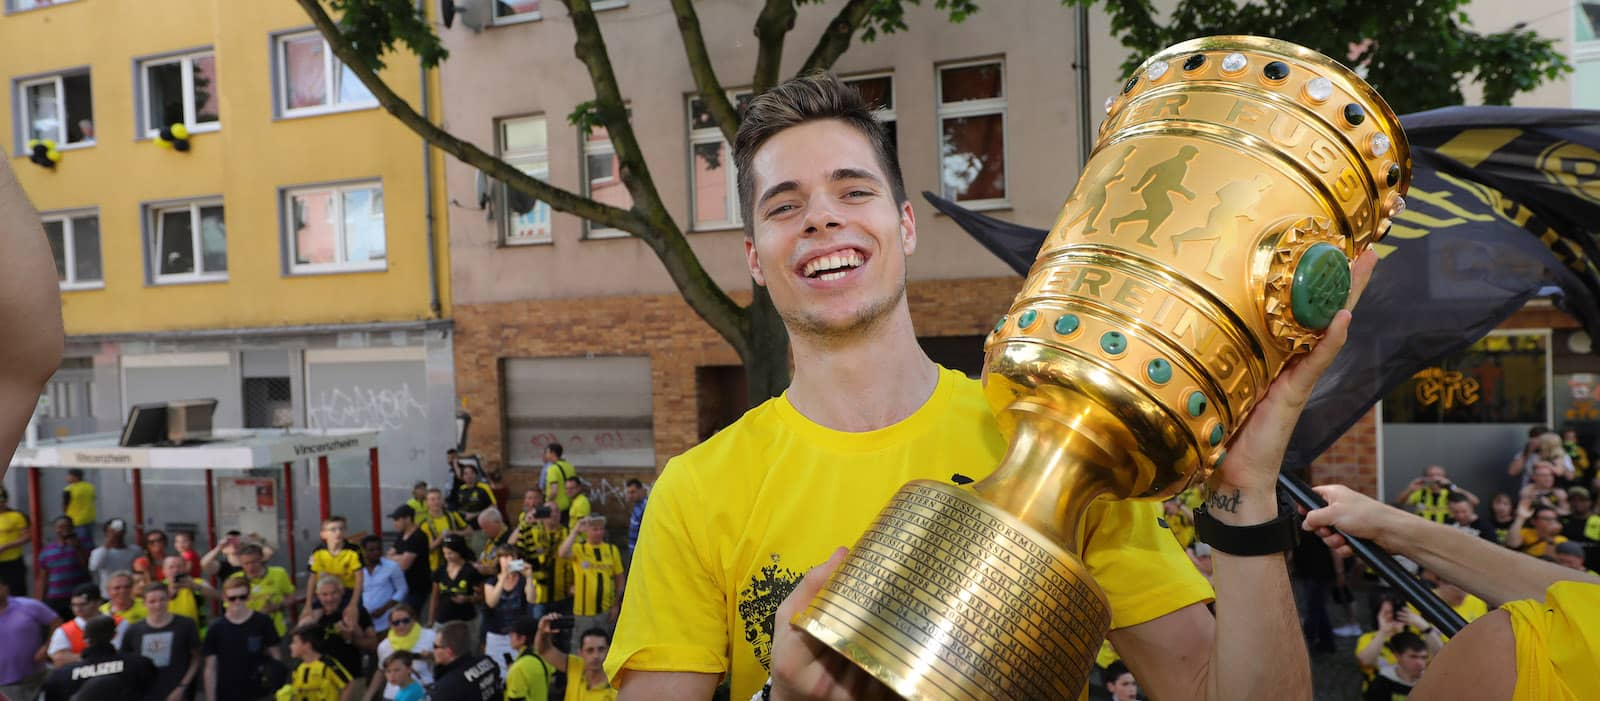 Manchester United considering bid for Borussia Dortmund midfielder Julian Weigl – report